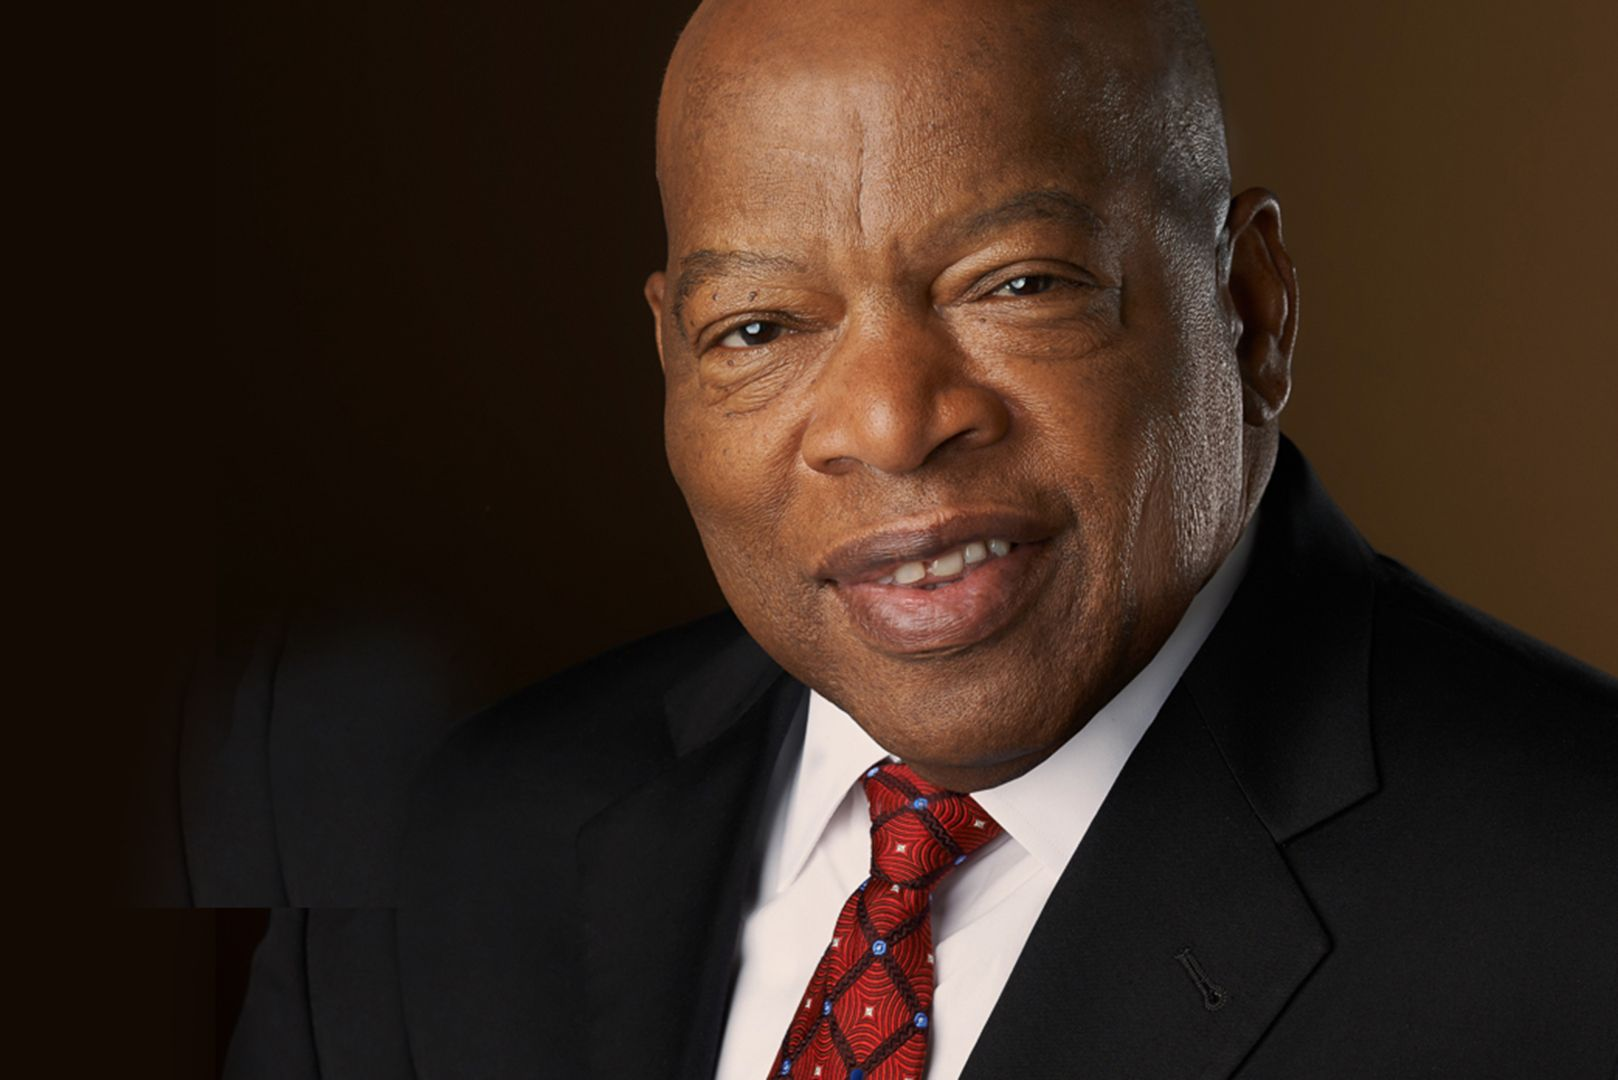 John Lewis Congressman Contact Information Civil Rights lea...